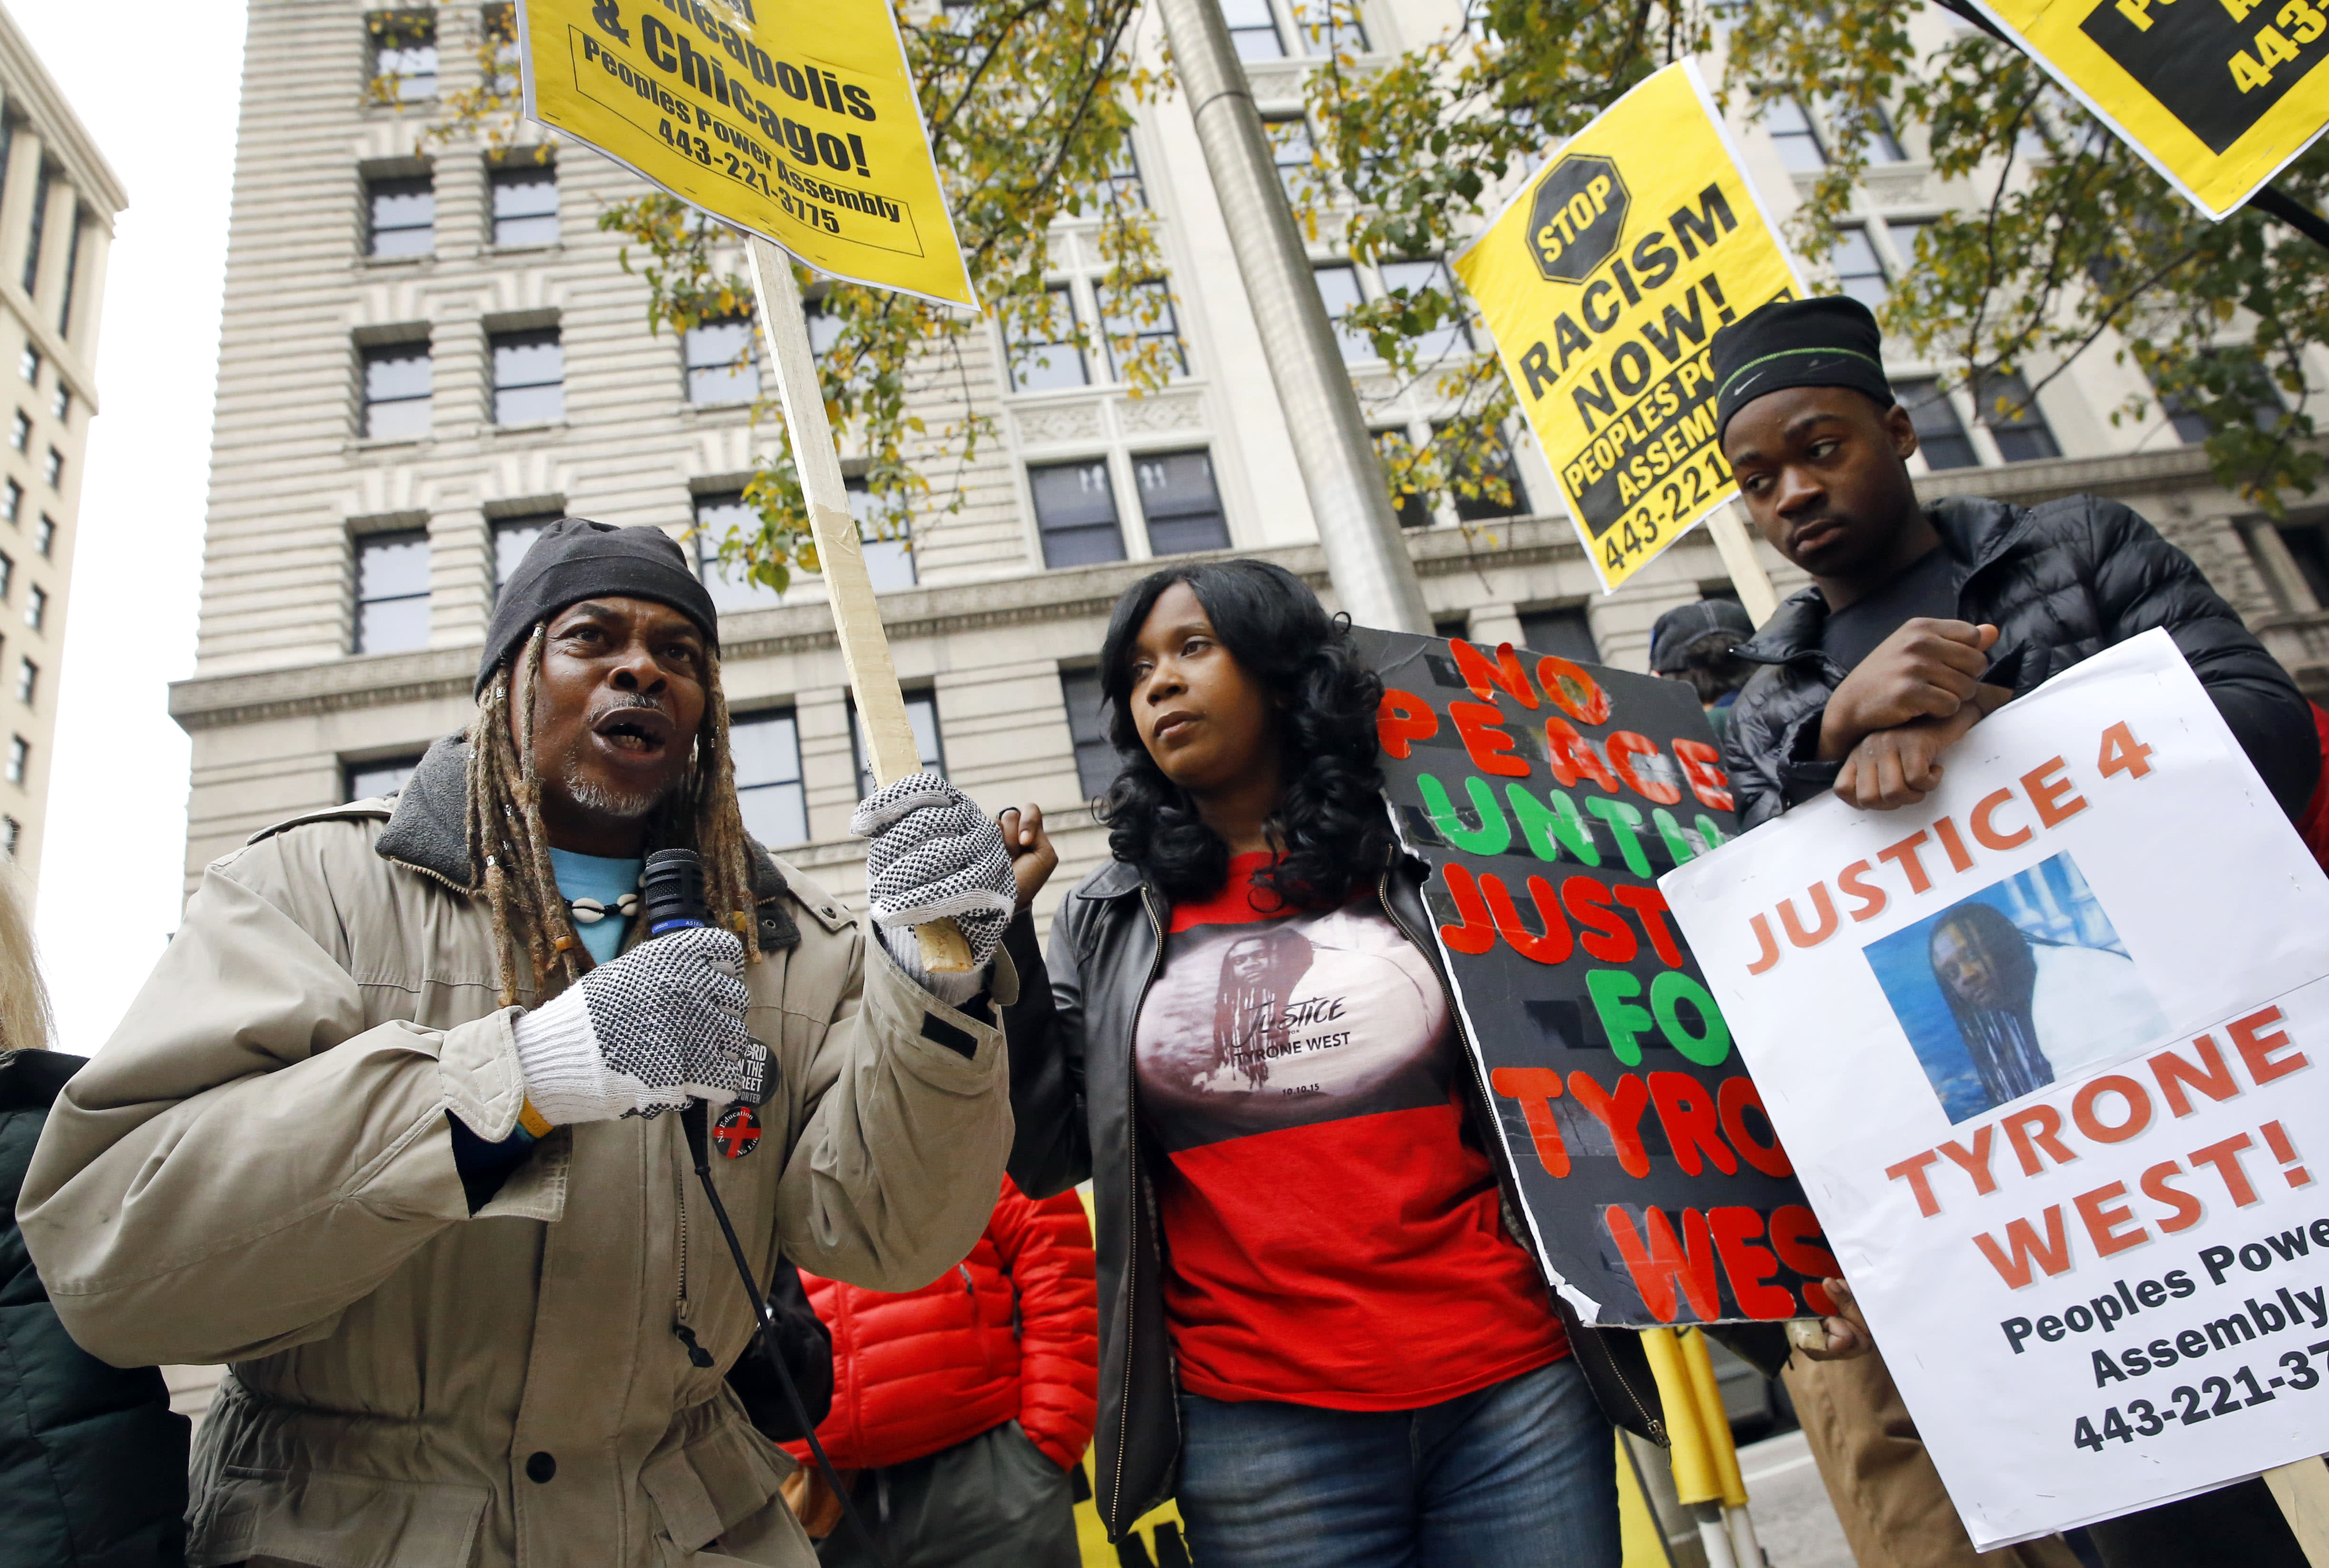 The Latest: Demonstrators rally for justice for Freddie Gray